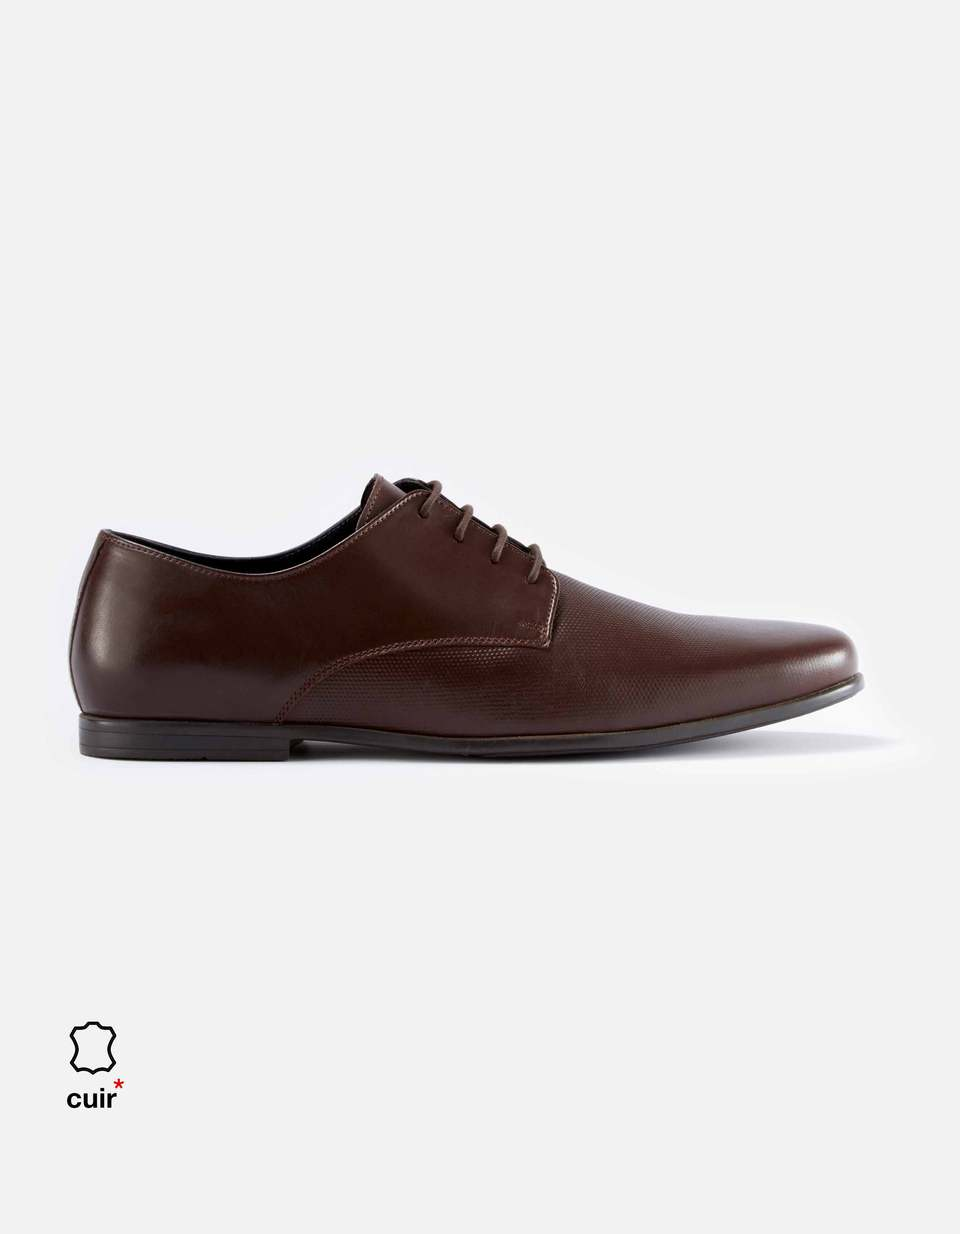 Chaussures derby 100% cuir - FYPERFO_BROWN - Image à plat - Celio France